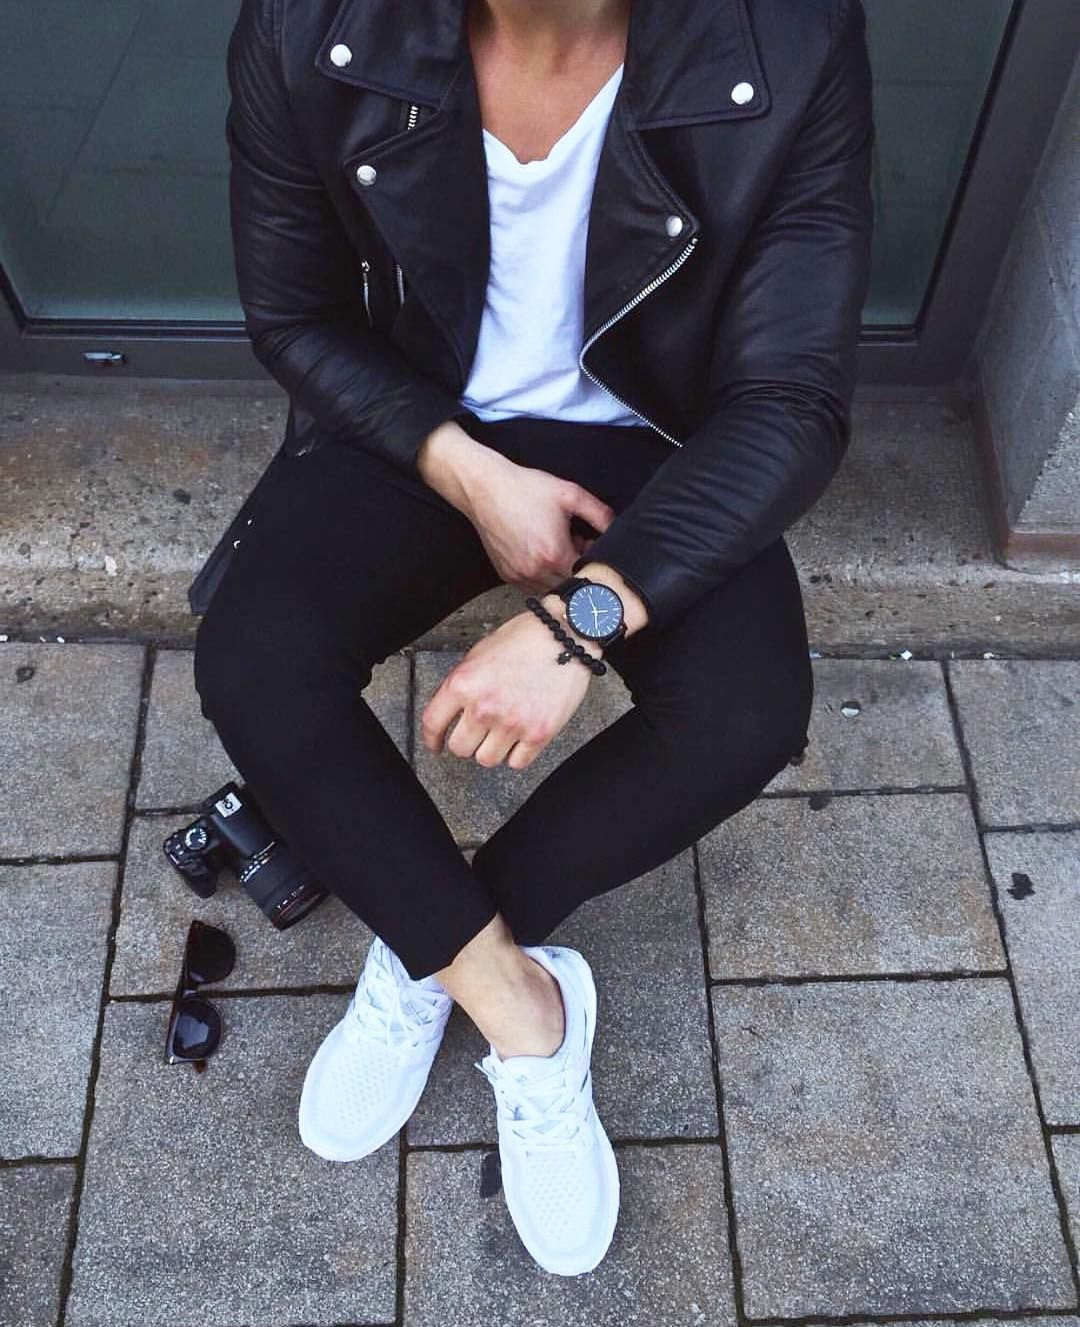 Leather jacket instagram - Black Leather Jacket Black Pants And Adidas Sneakers Http Ift